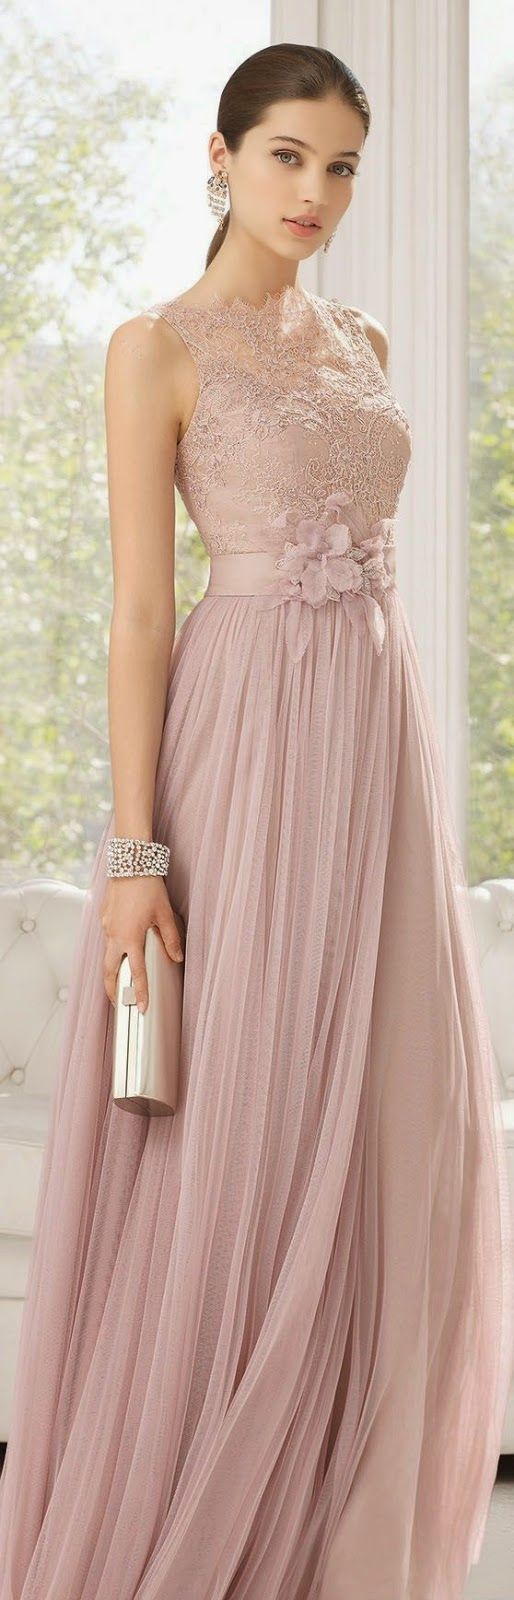 best style at night images on pinterest party fashion party